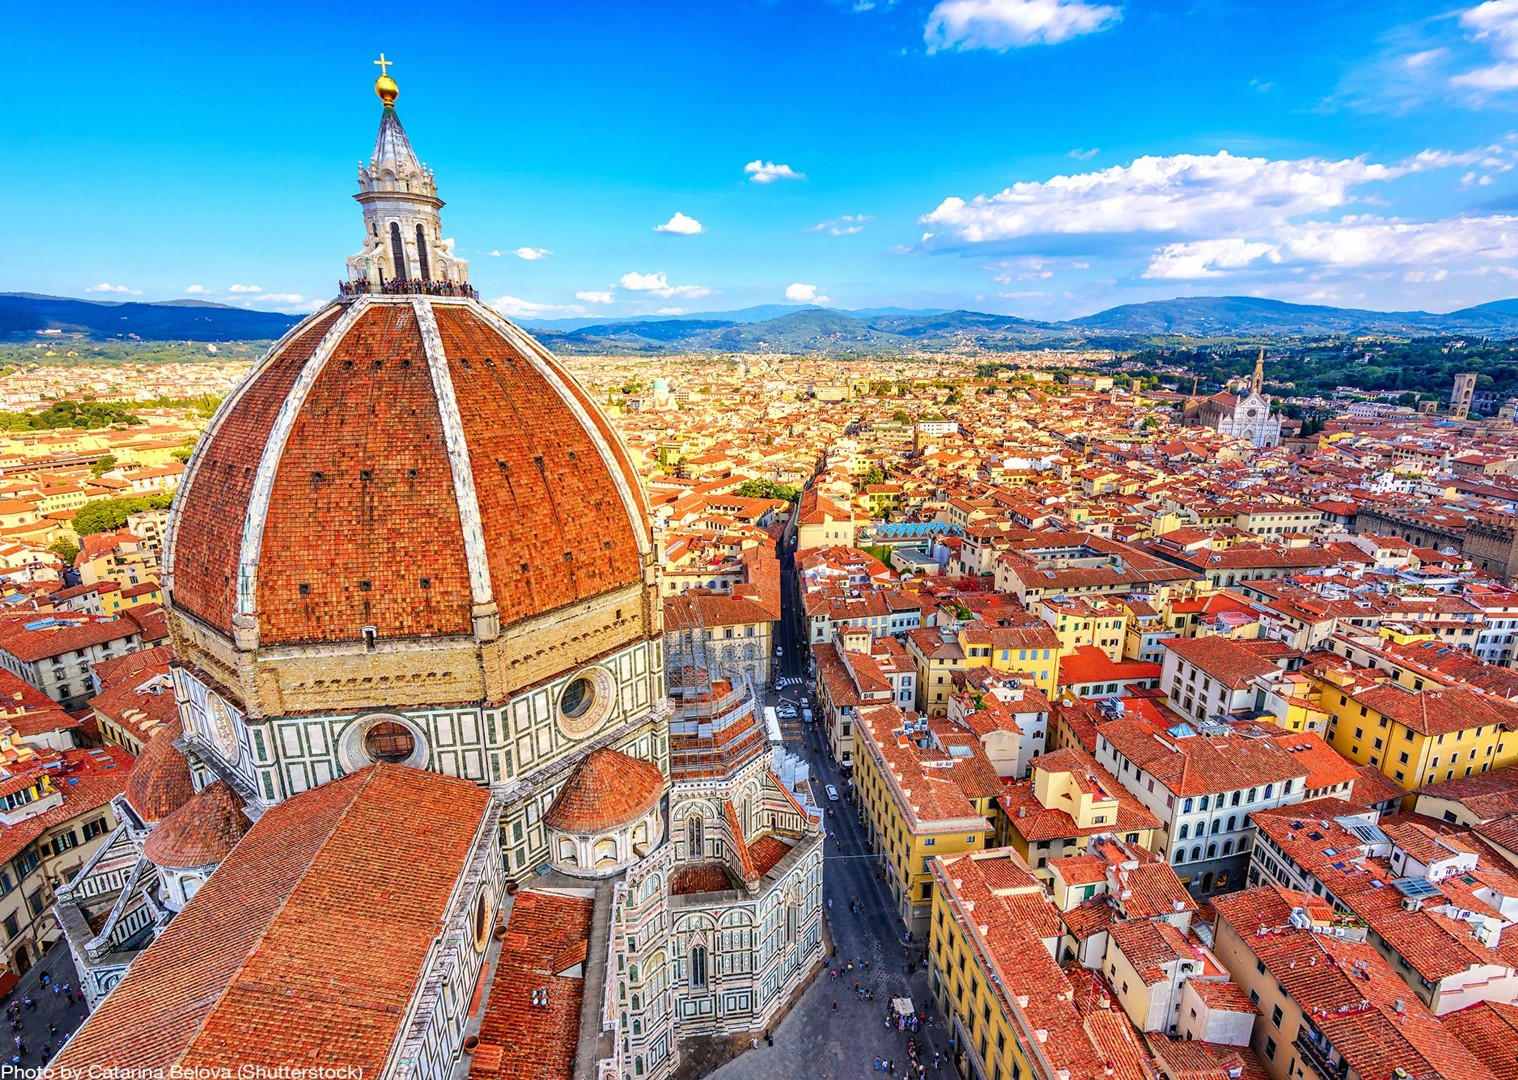 cathedral-de-santa-maria-del-fiore-florence-leisure-bike-tour.jpg - Italy - Tuscany - Pisa to Florence - Self-Guided Leisure Cycling Holiday - Leisure Cycling